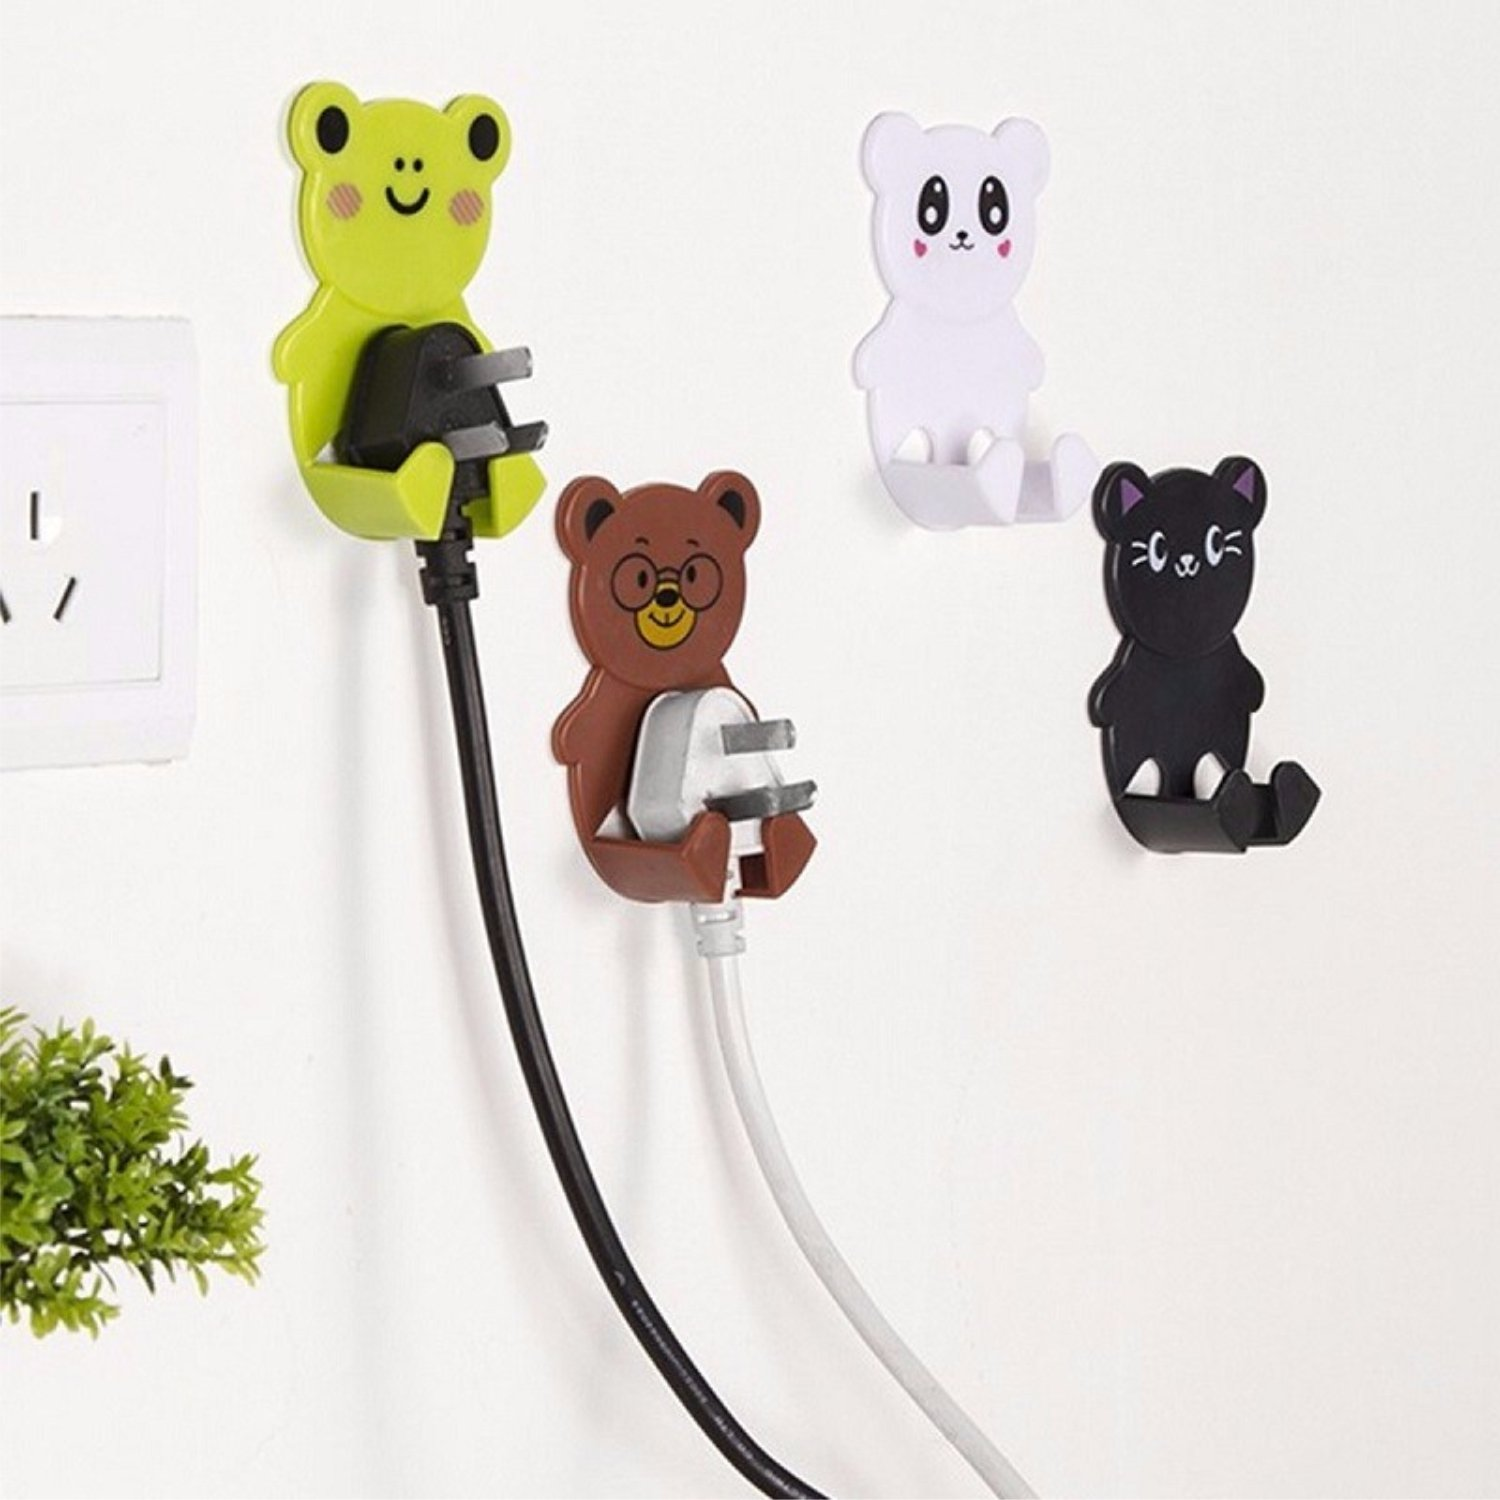 4pcs/pack Plastic Cartoon Animal Plug Socket Hanger Wall Adhesive Cute Hooks (Random)